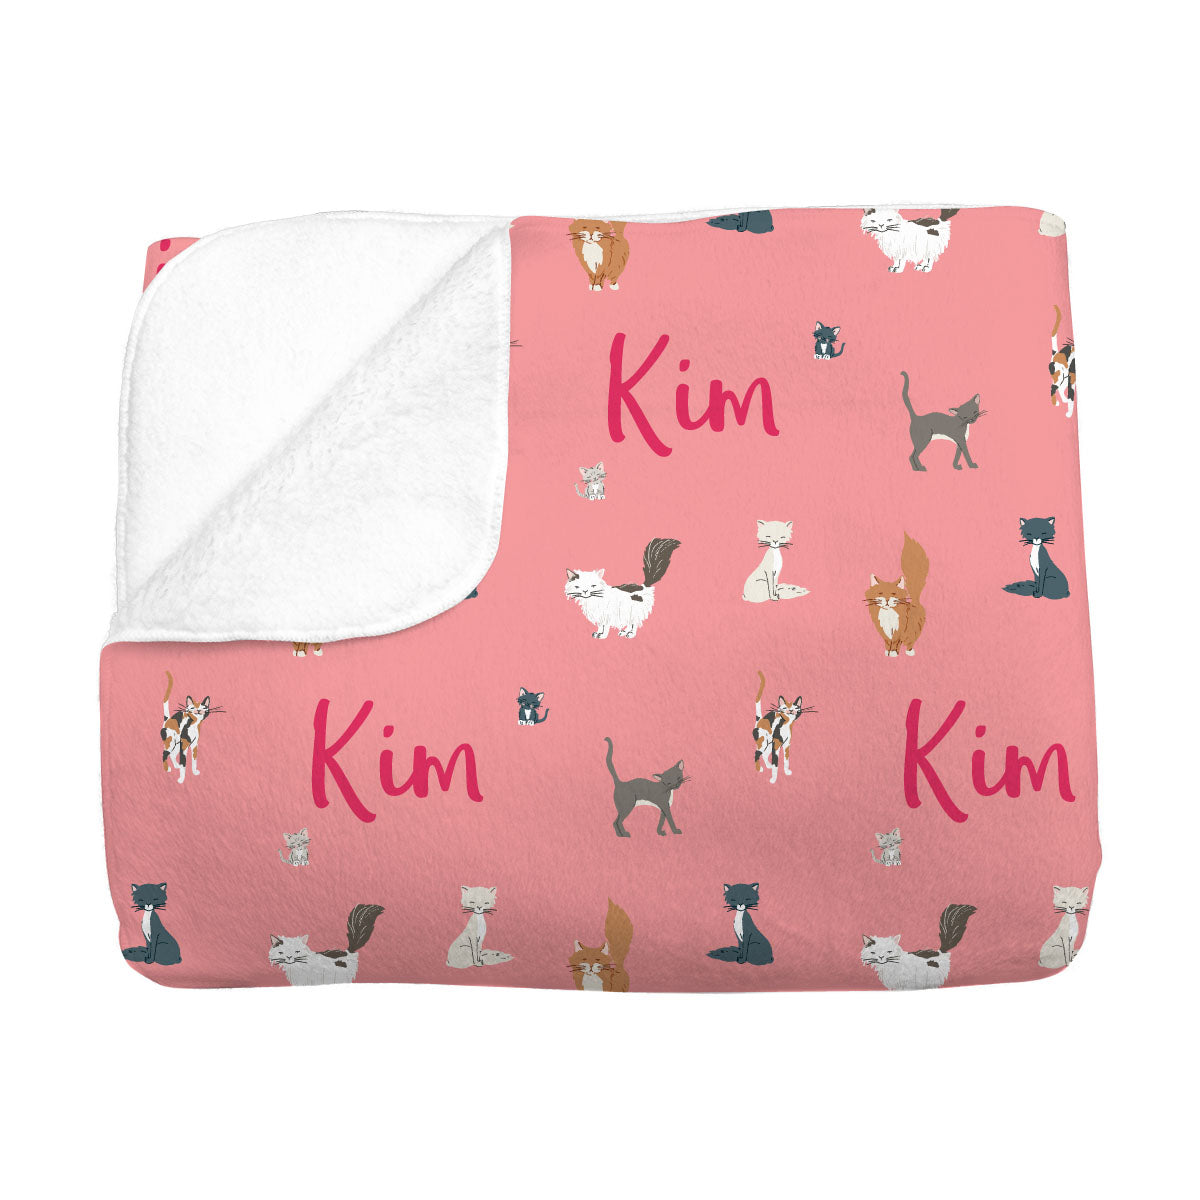 Kim's Kitten Club | Big Kid Blanket